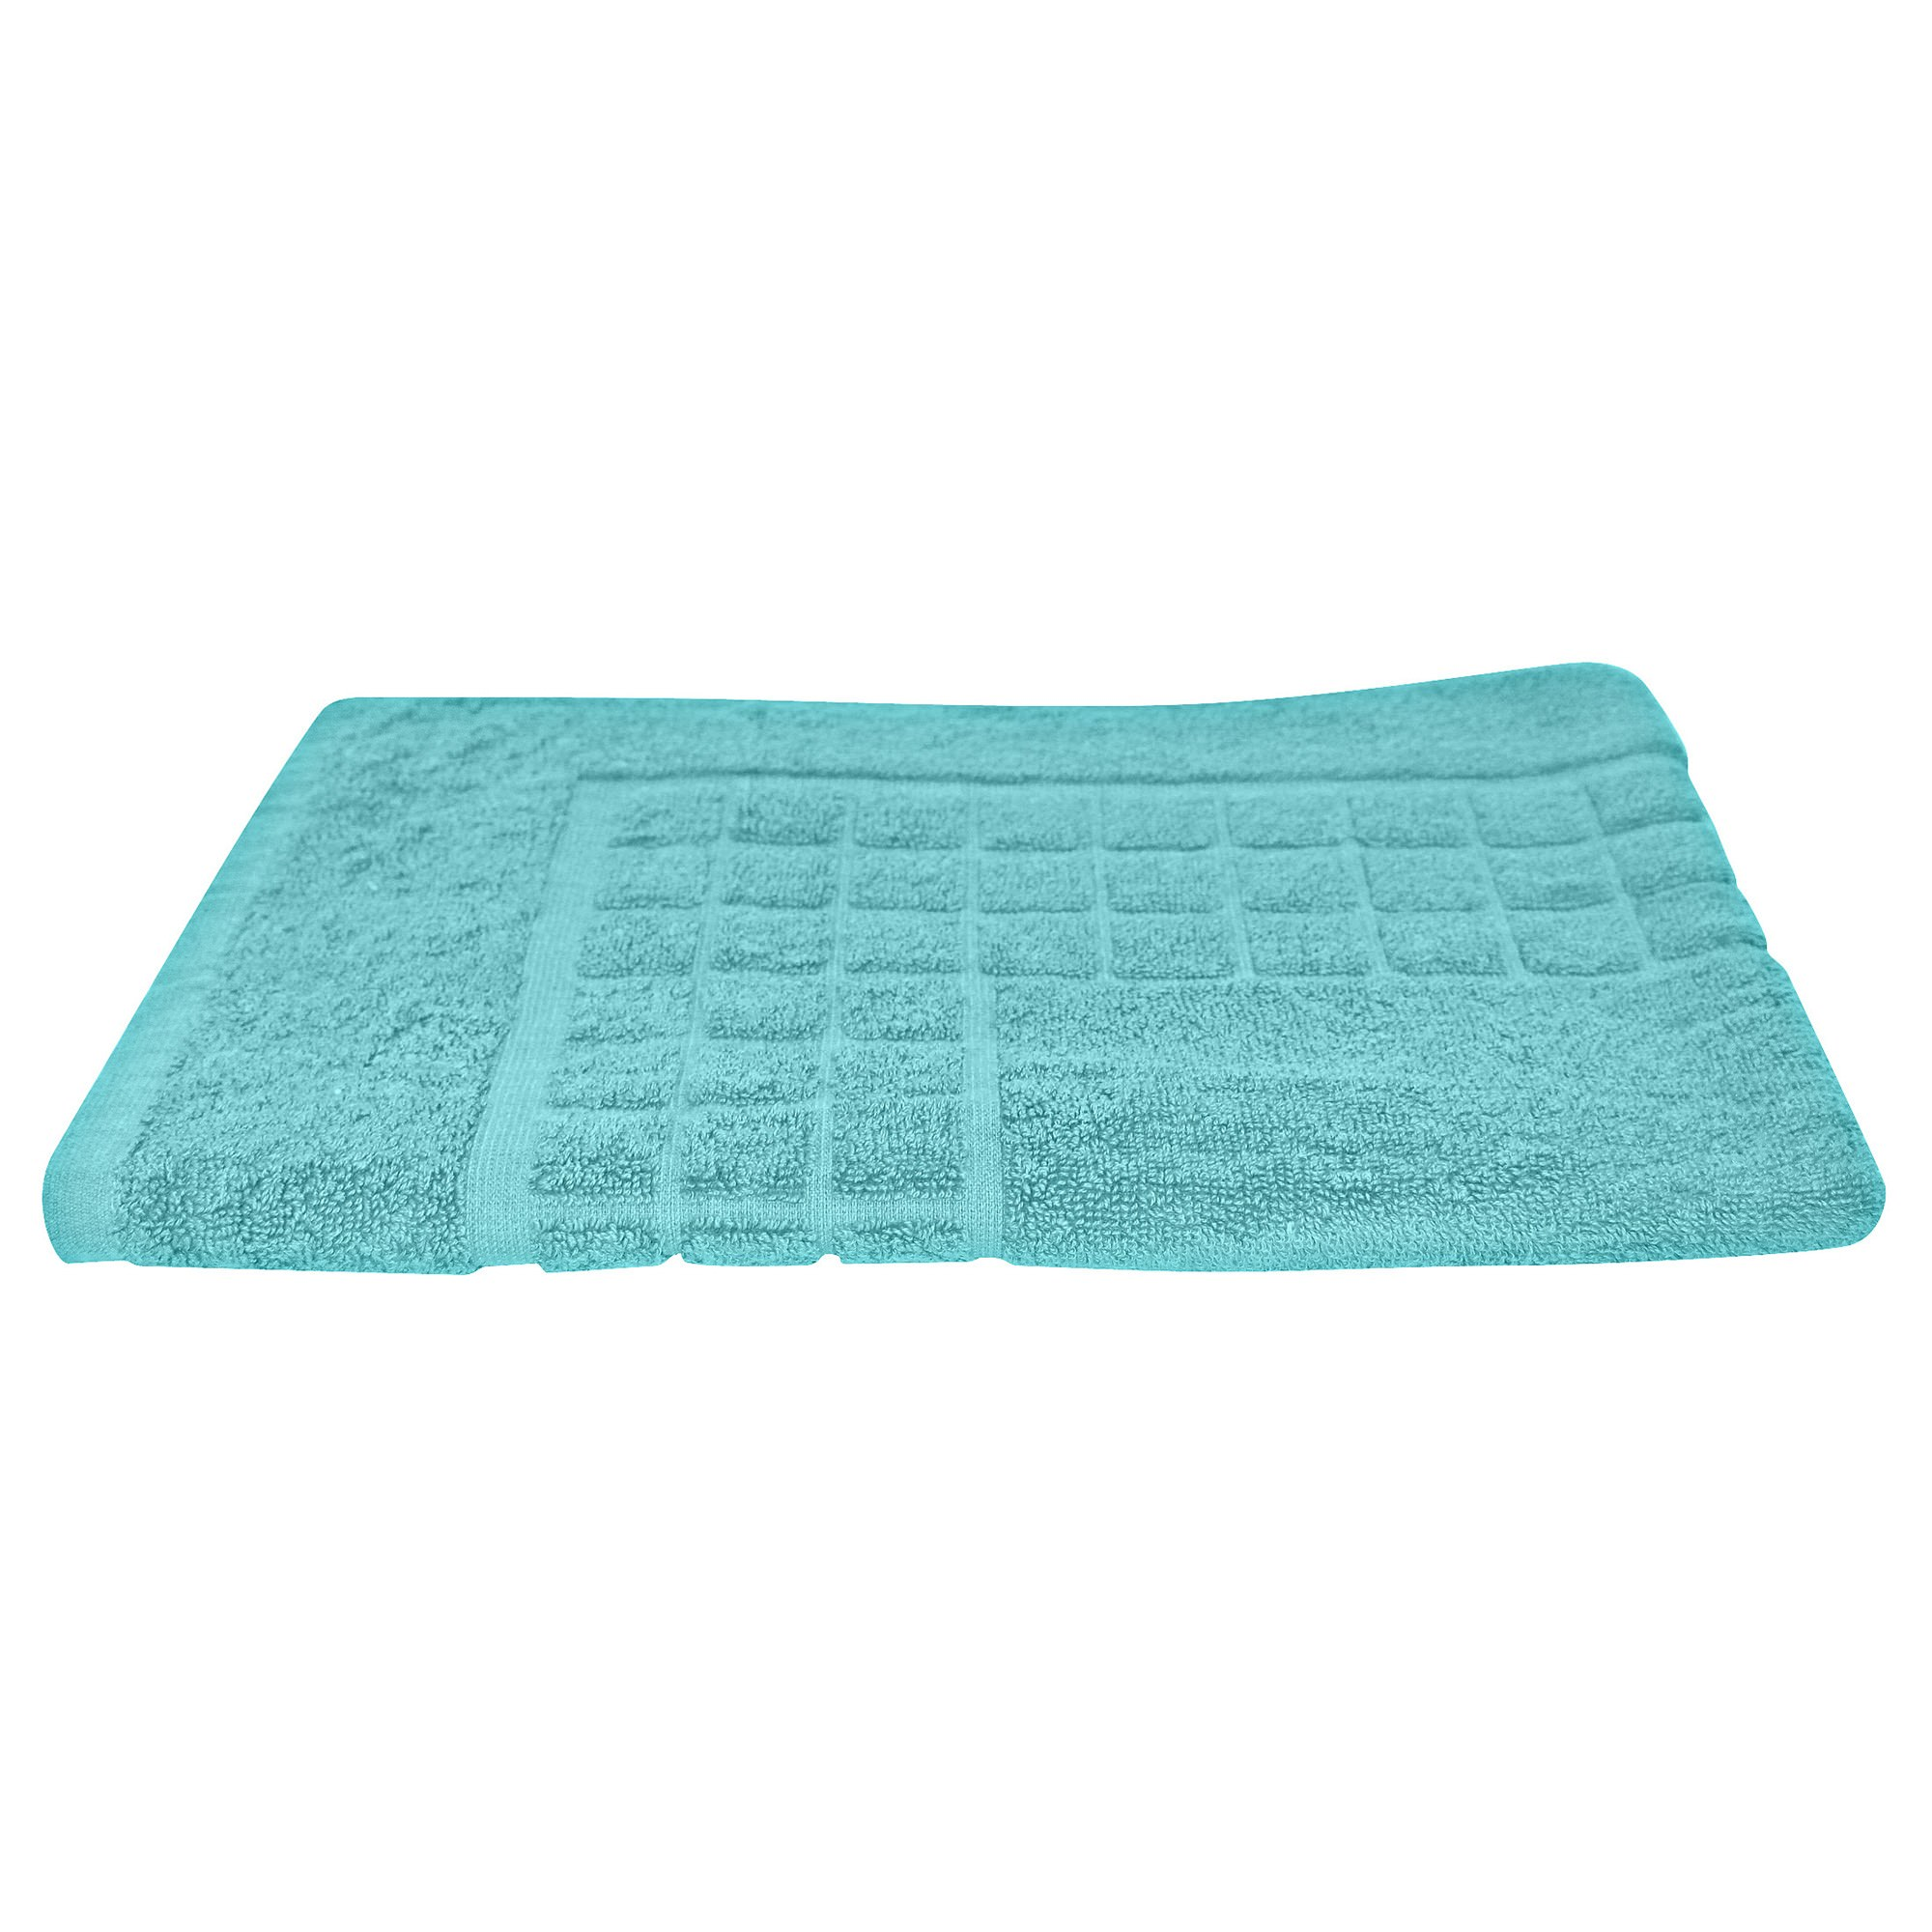 Odyssey Living Meridian Cotton Bath Mat, Mint